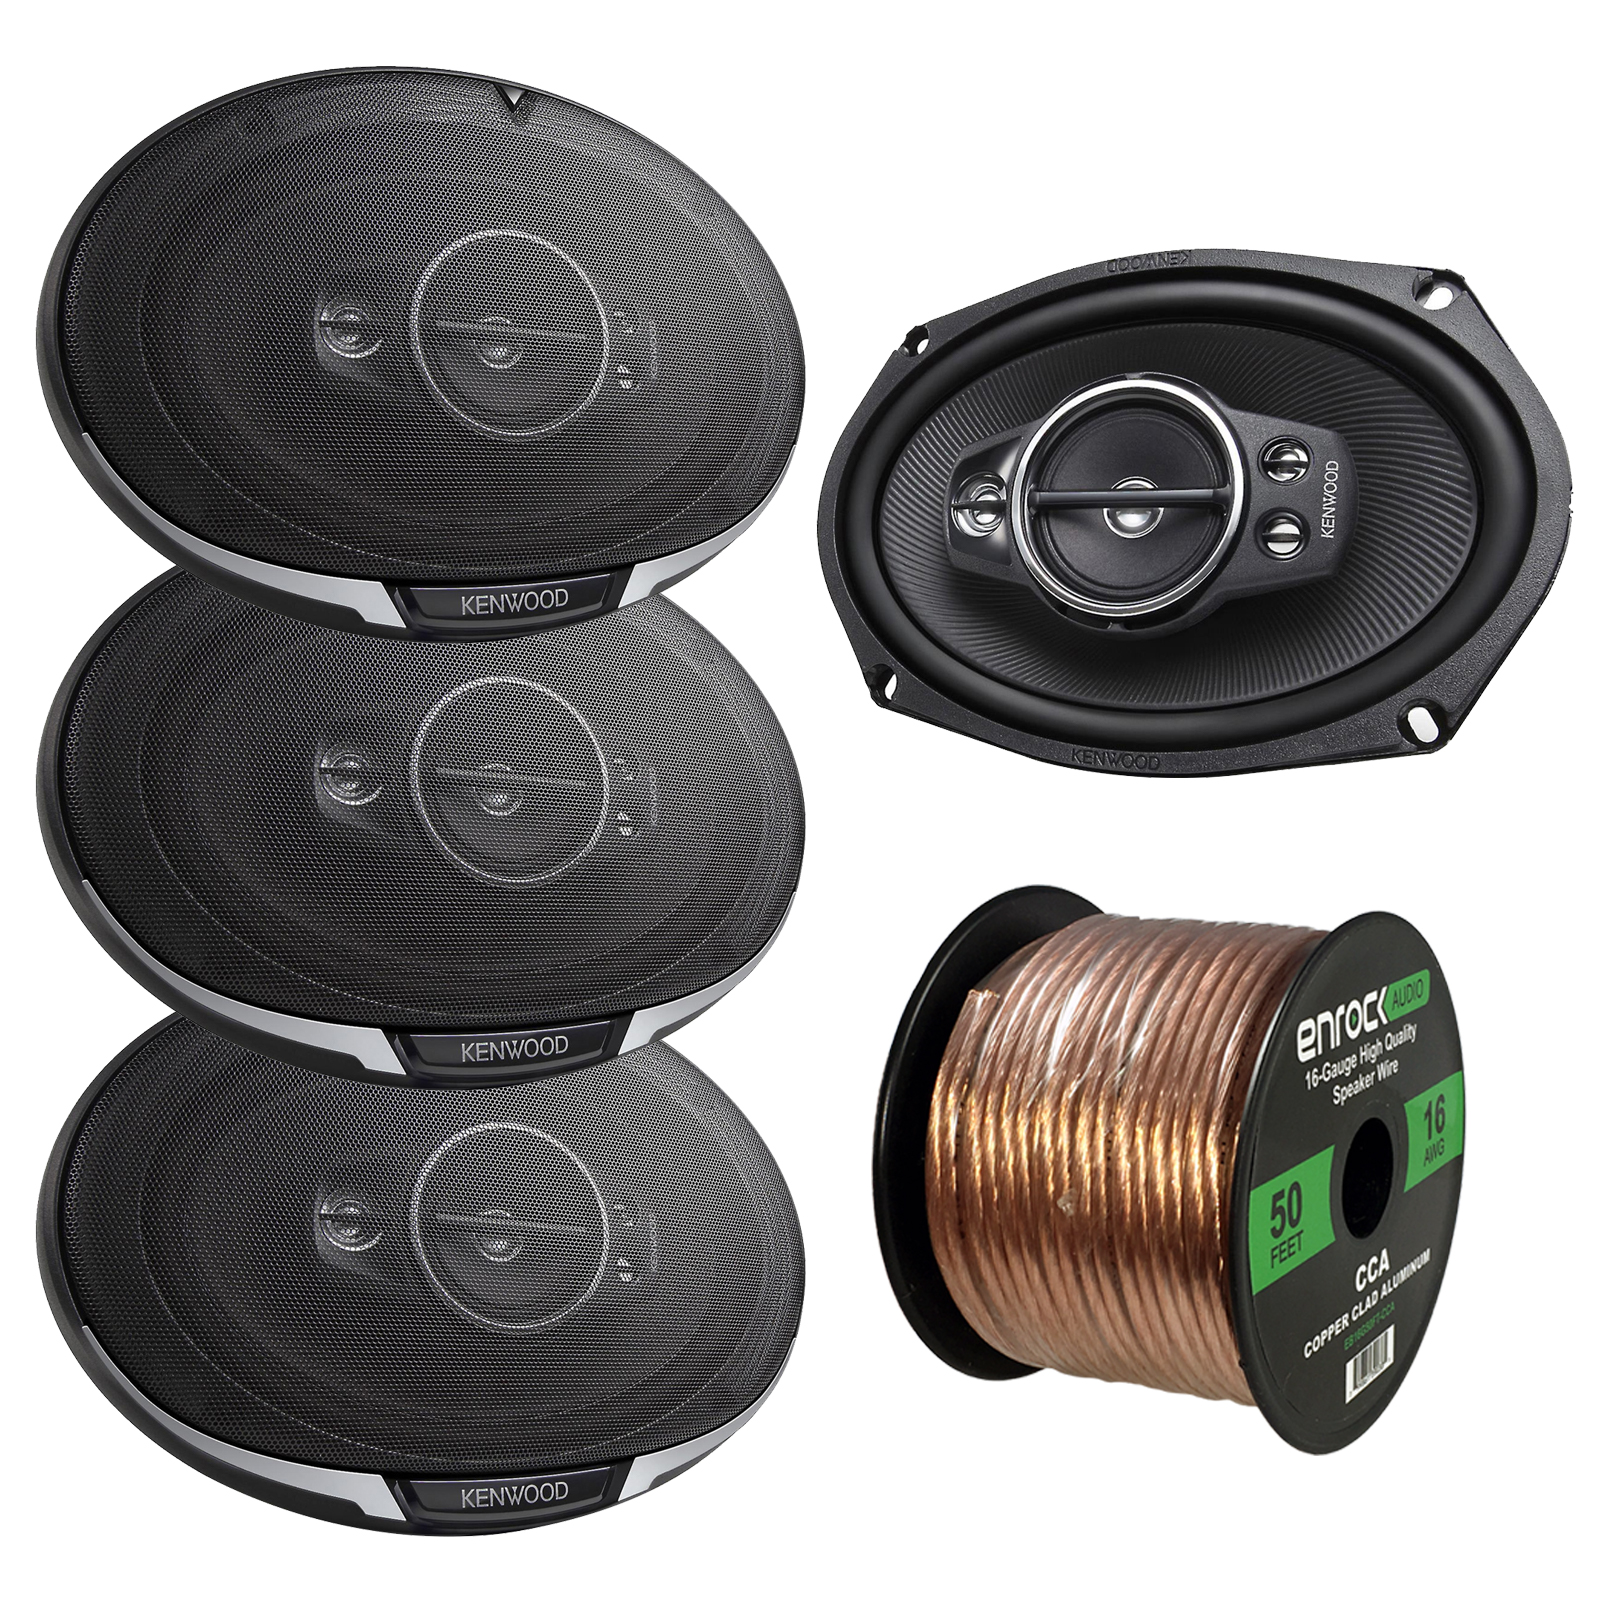 "2 x Kenwood KFC6995PS 6X9"" 650W 5-Way Speakers (2 pairs), and Enrock Audio 16-Gauge 50 Foot Speaker Wire"